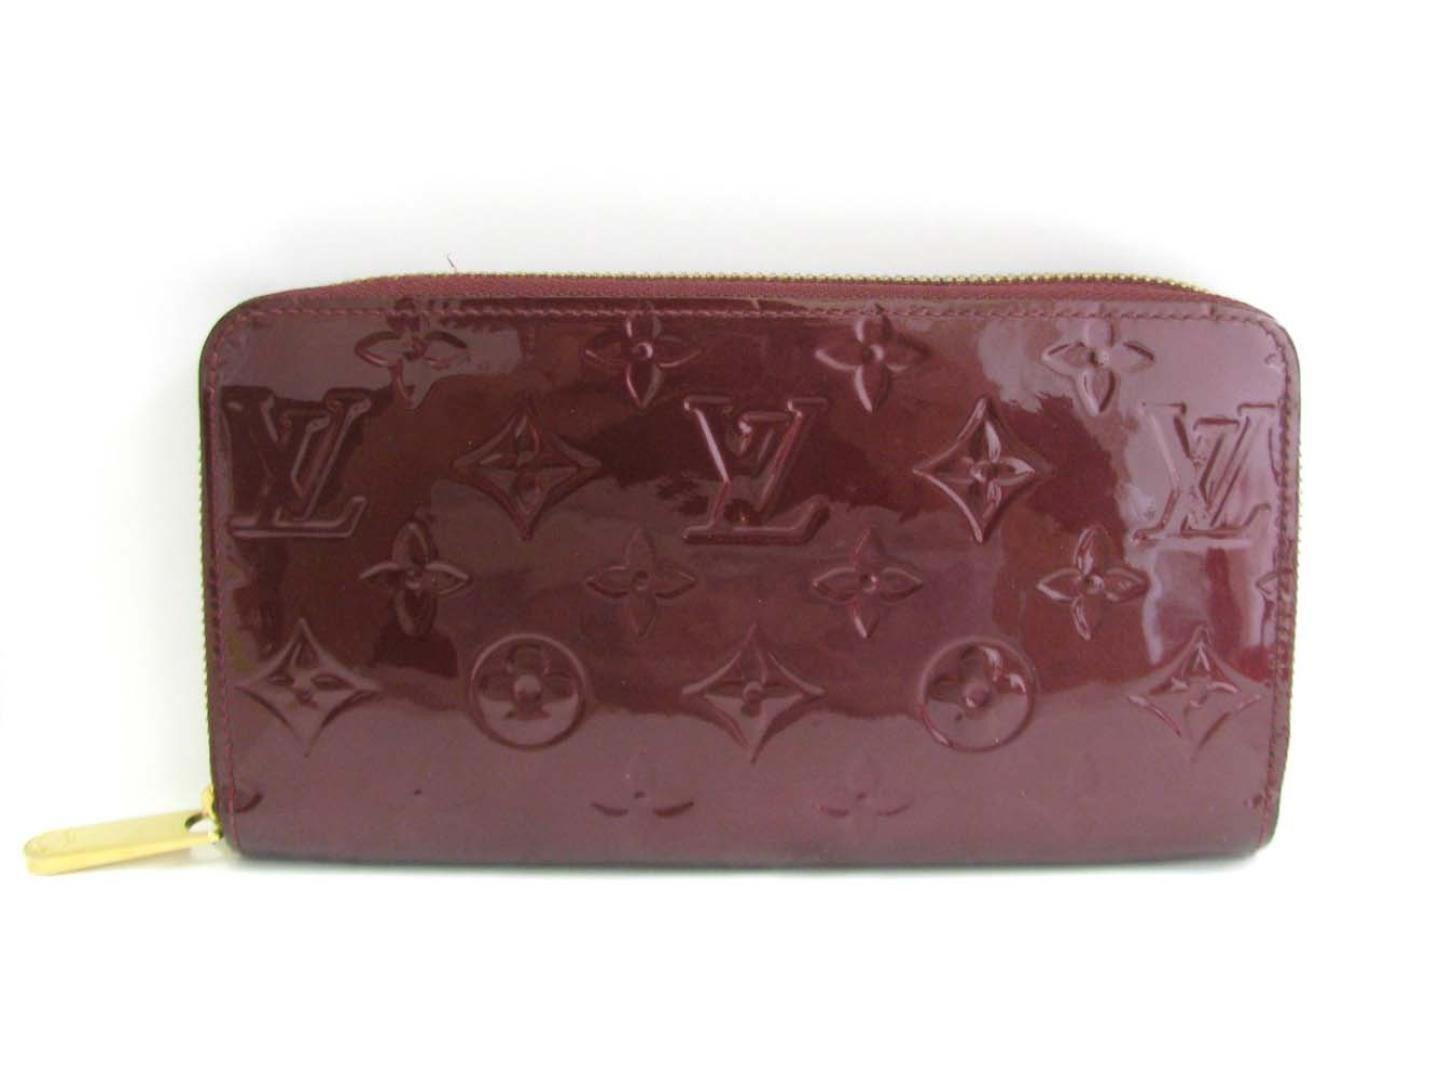 b1d5975f87fd Lyst - Louis Vuitton Auth Zippy Long Wallet Monogram Vernis Leather ...